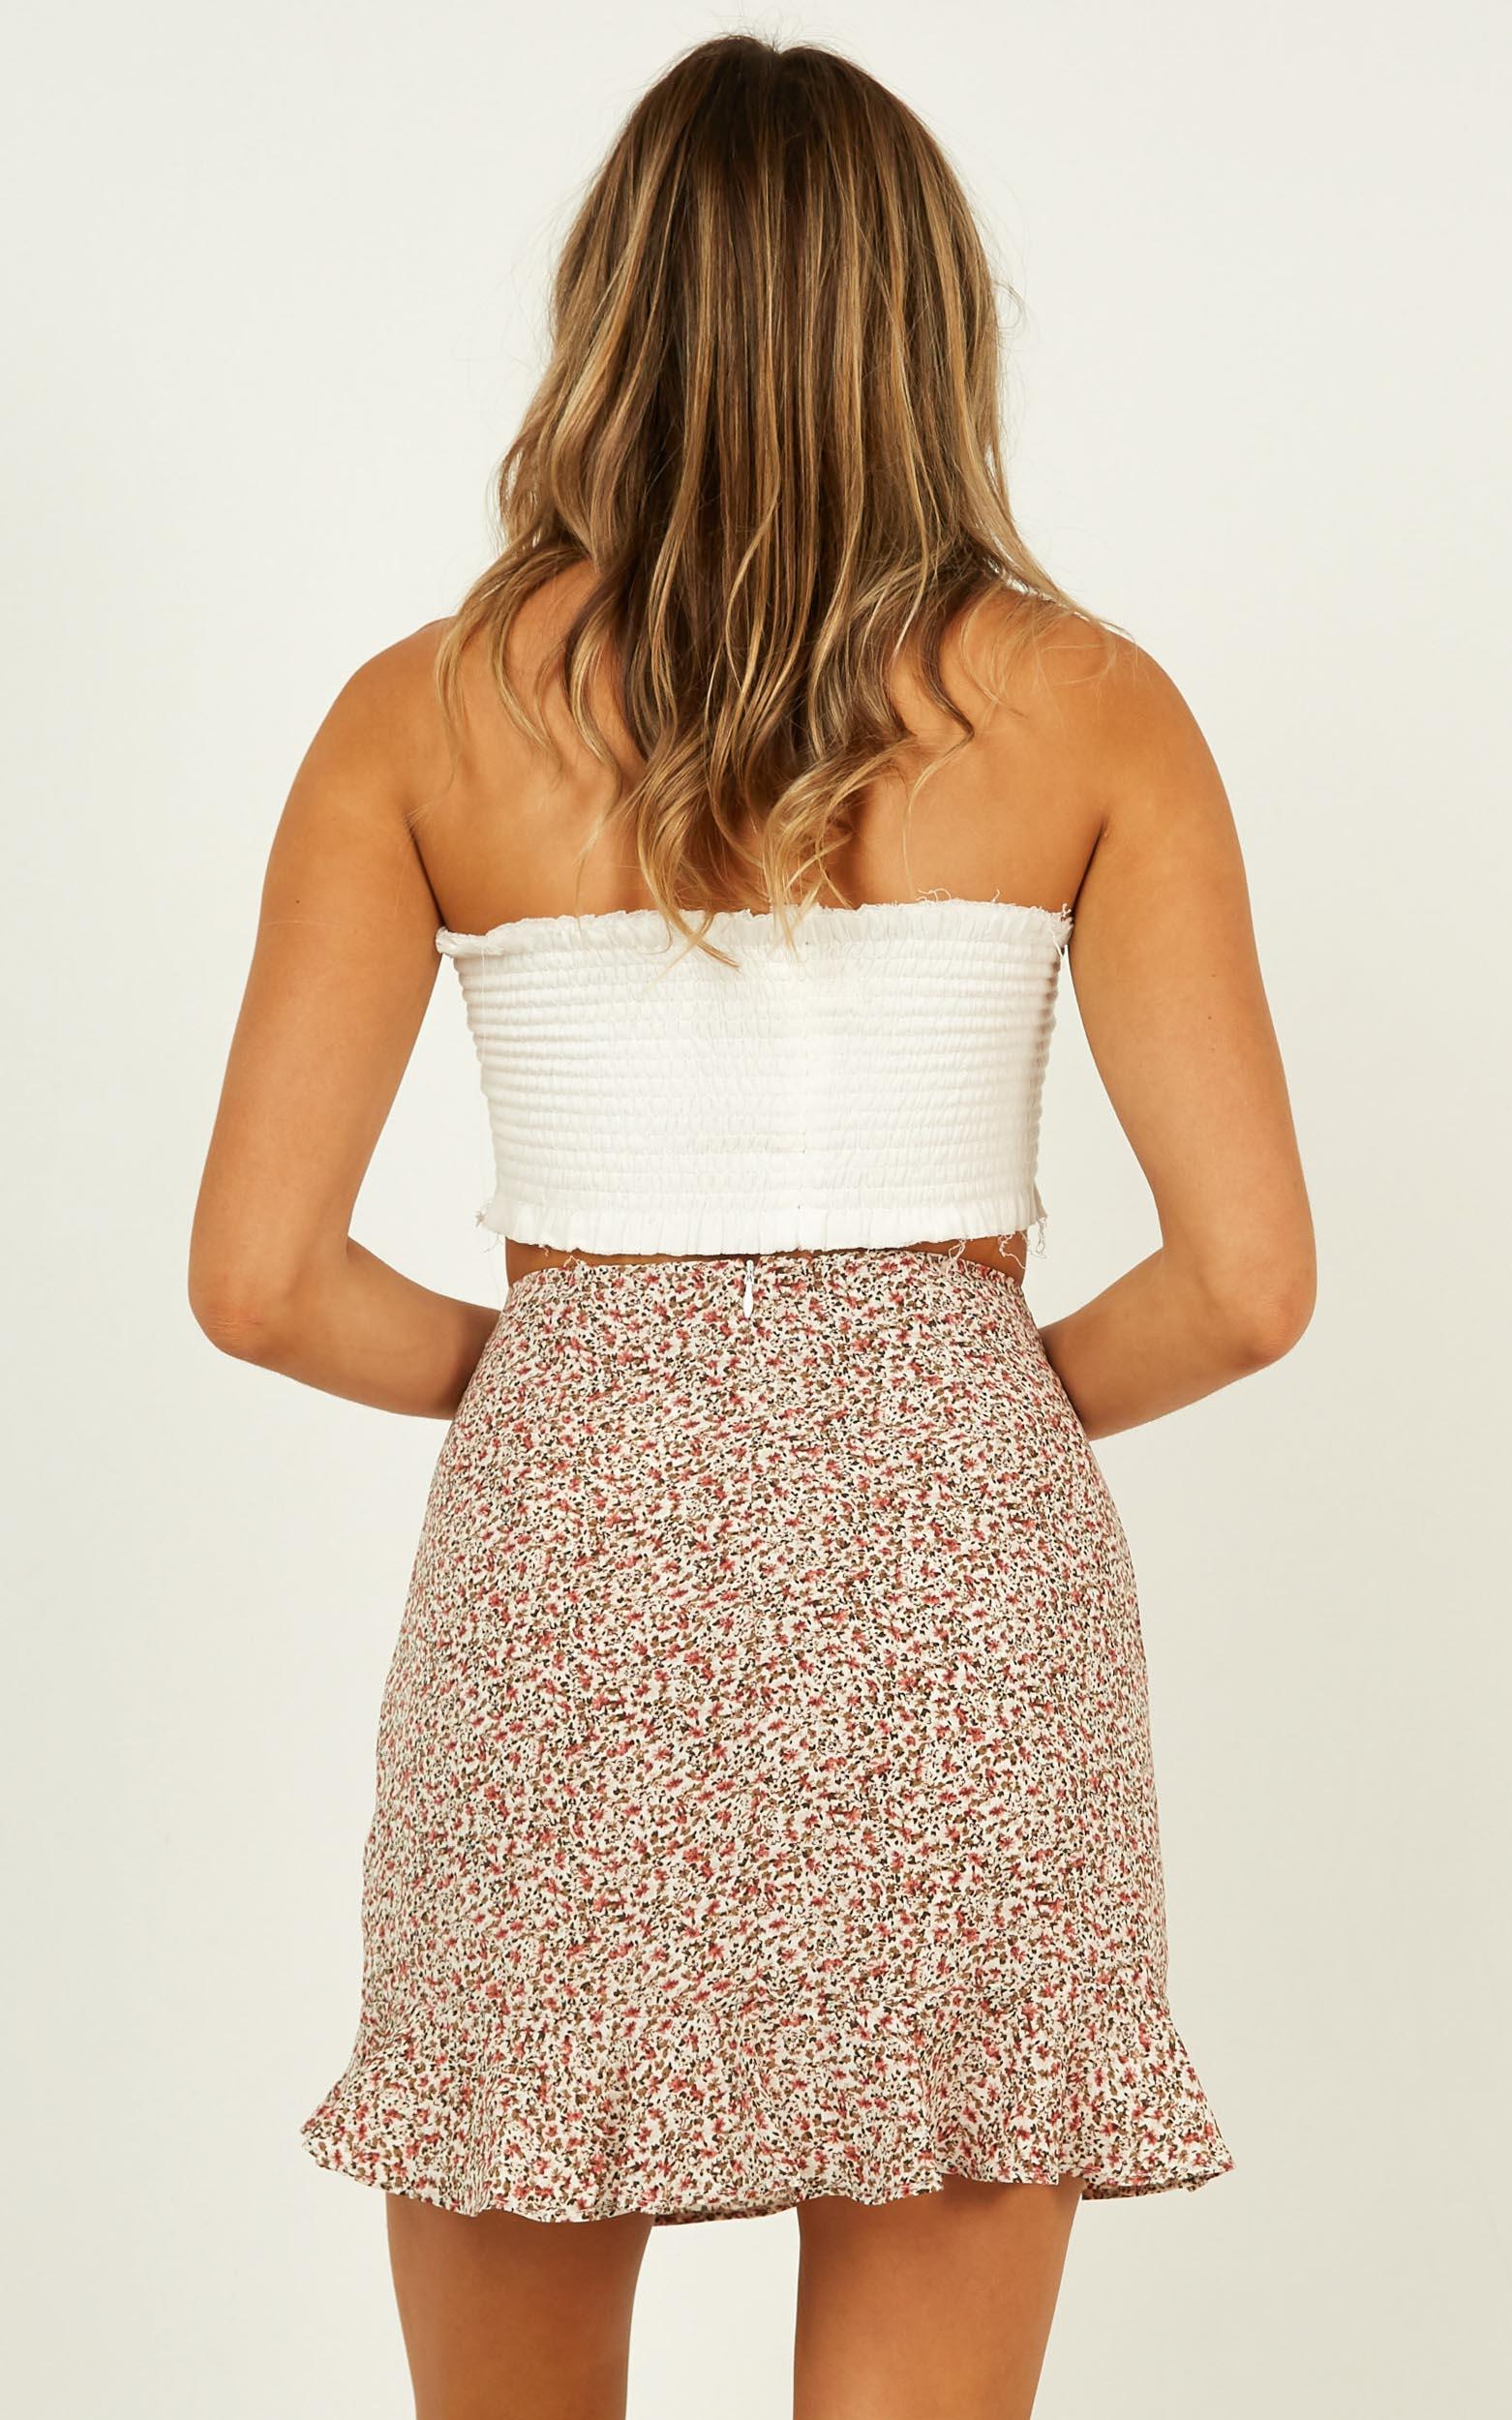 Make No Promises Skirt in blush floral - 18 (XXXL), Blush, hi-res image number null